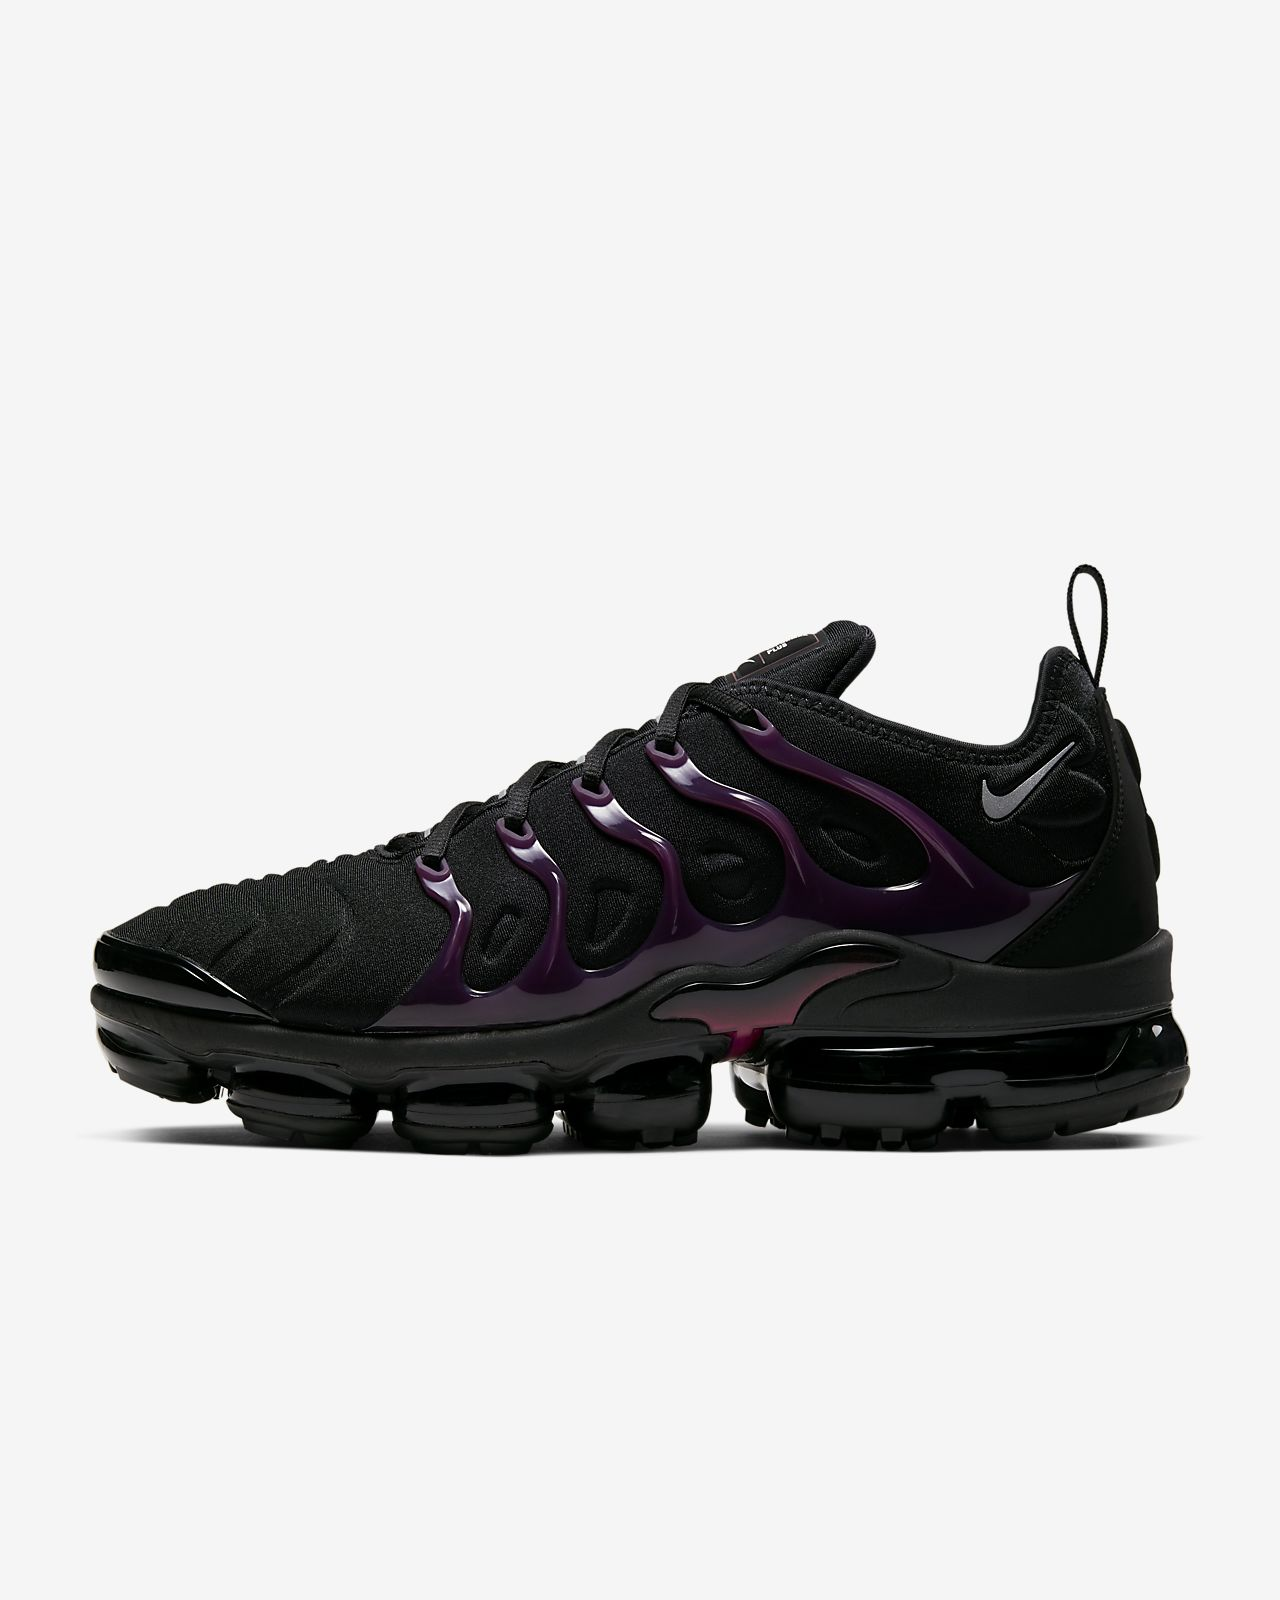 sells big discount outlet online Chaussure Nike Air VaporMax Plus pour Homme